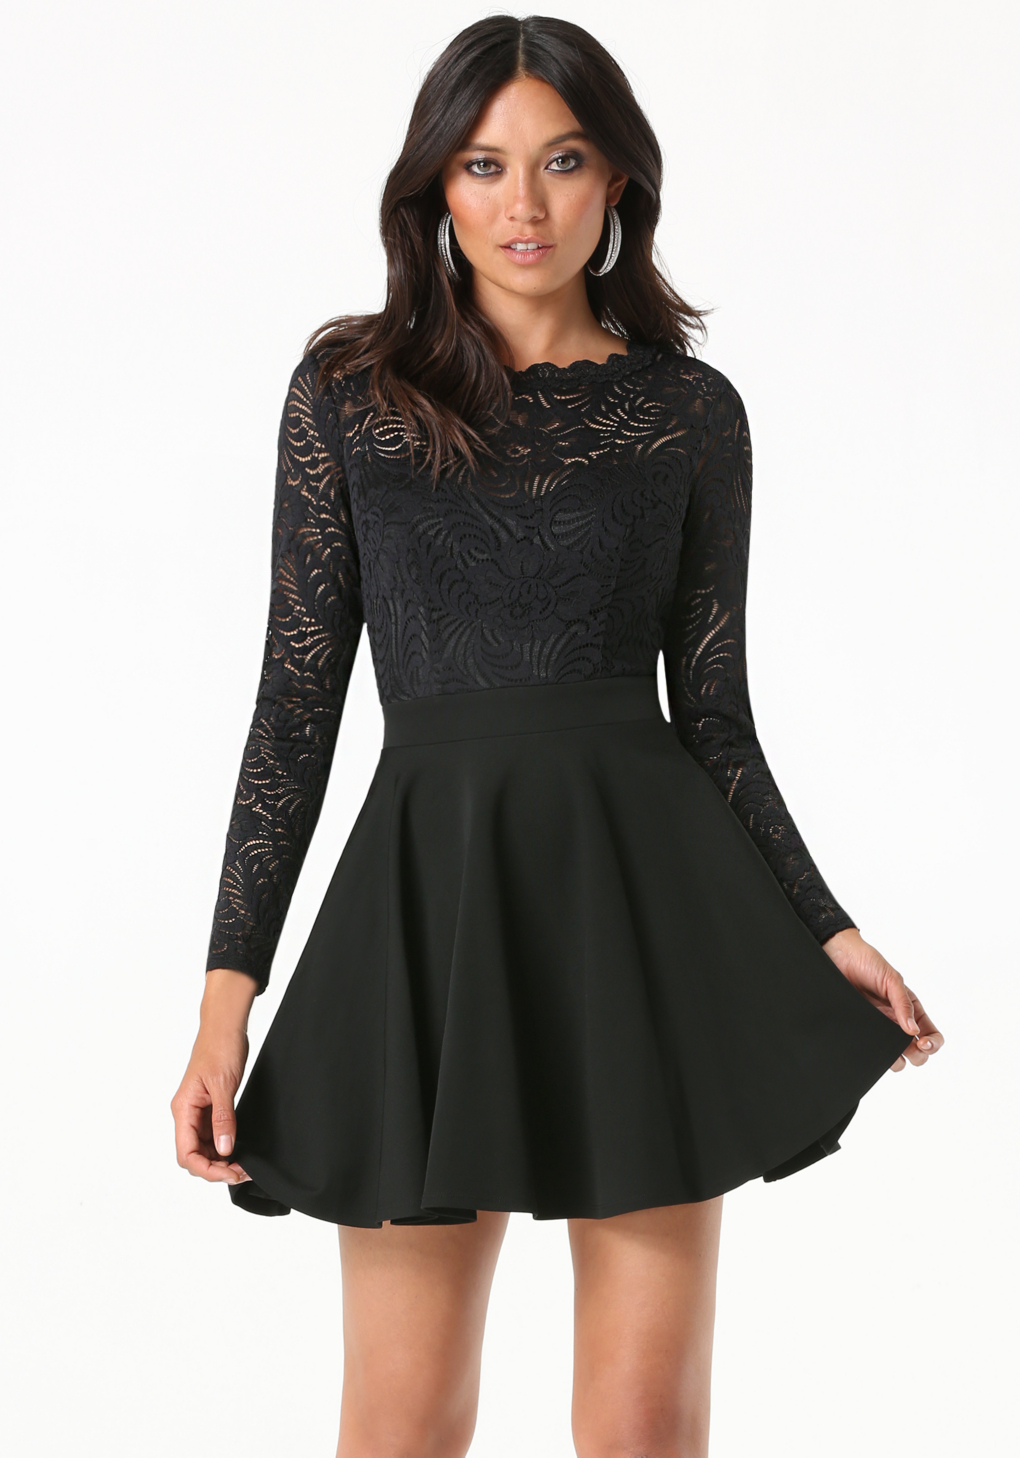 Prada Lace Backless Cocktail Dress